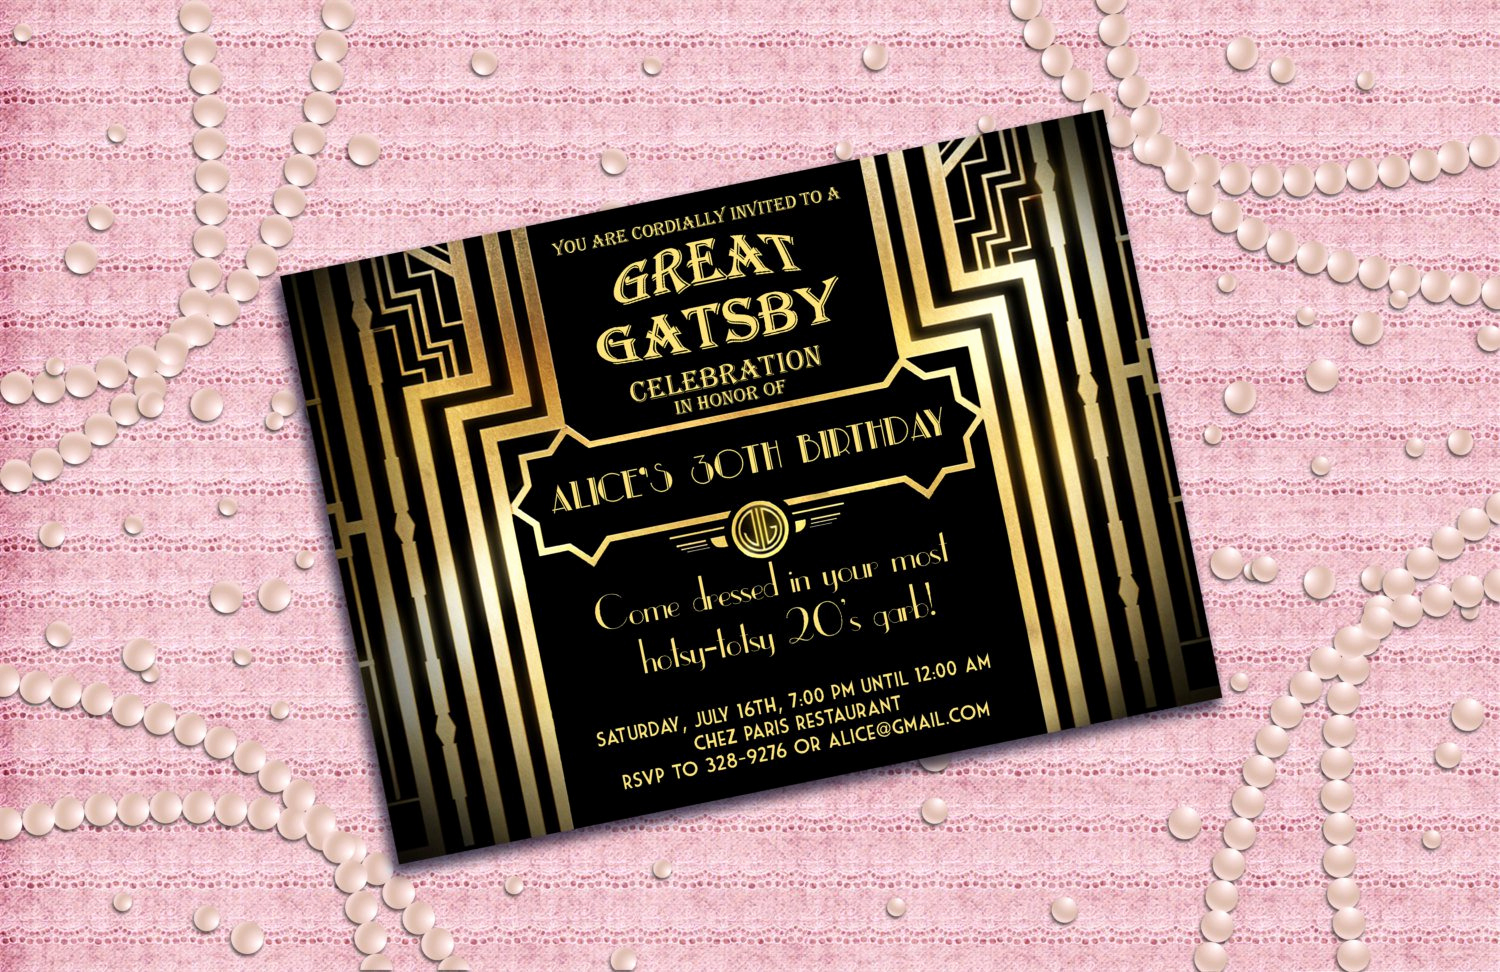 Great Gatsby Invitation Template Fresh Great Gatsby Birthday Party Invitations